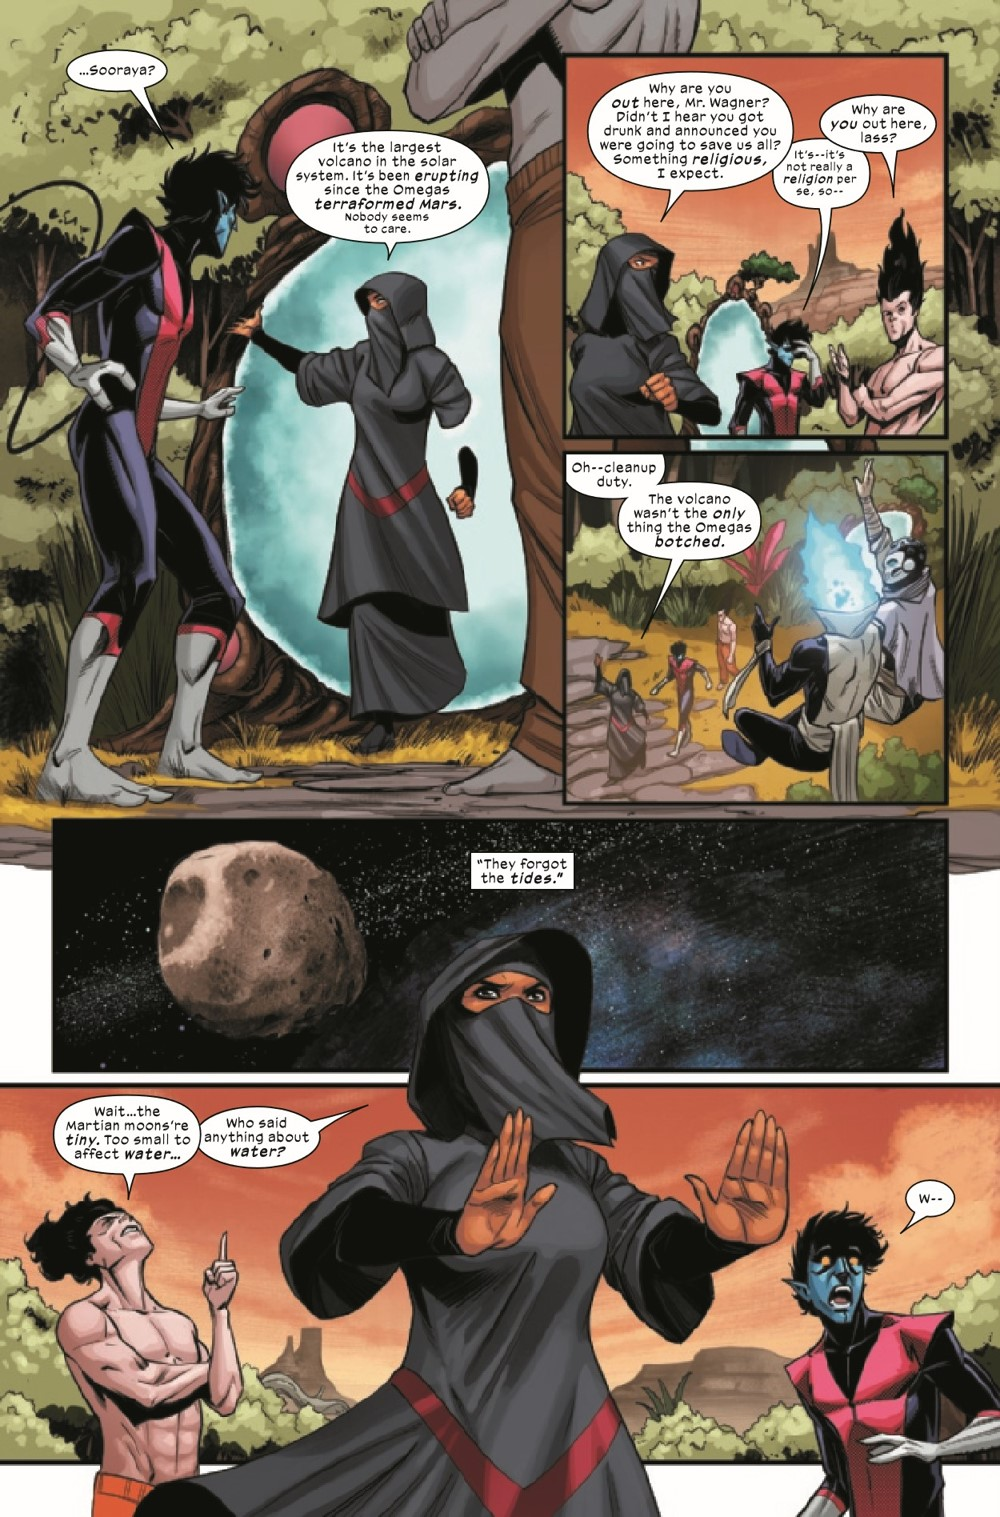 WAYOFX2021004_Preview-2 ComicList Previews: WAY OF X #4